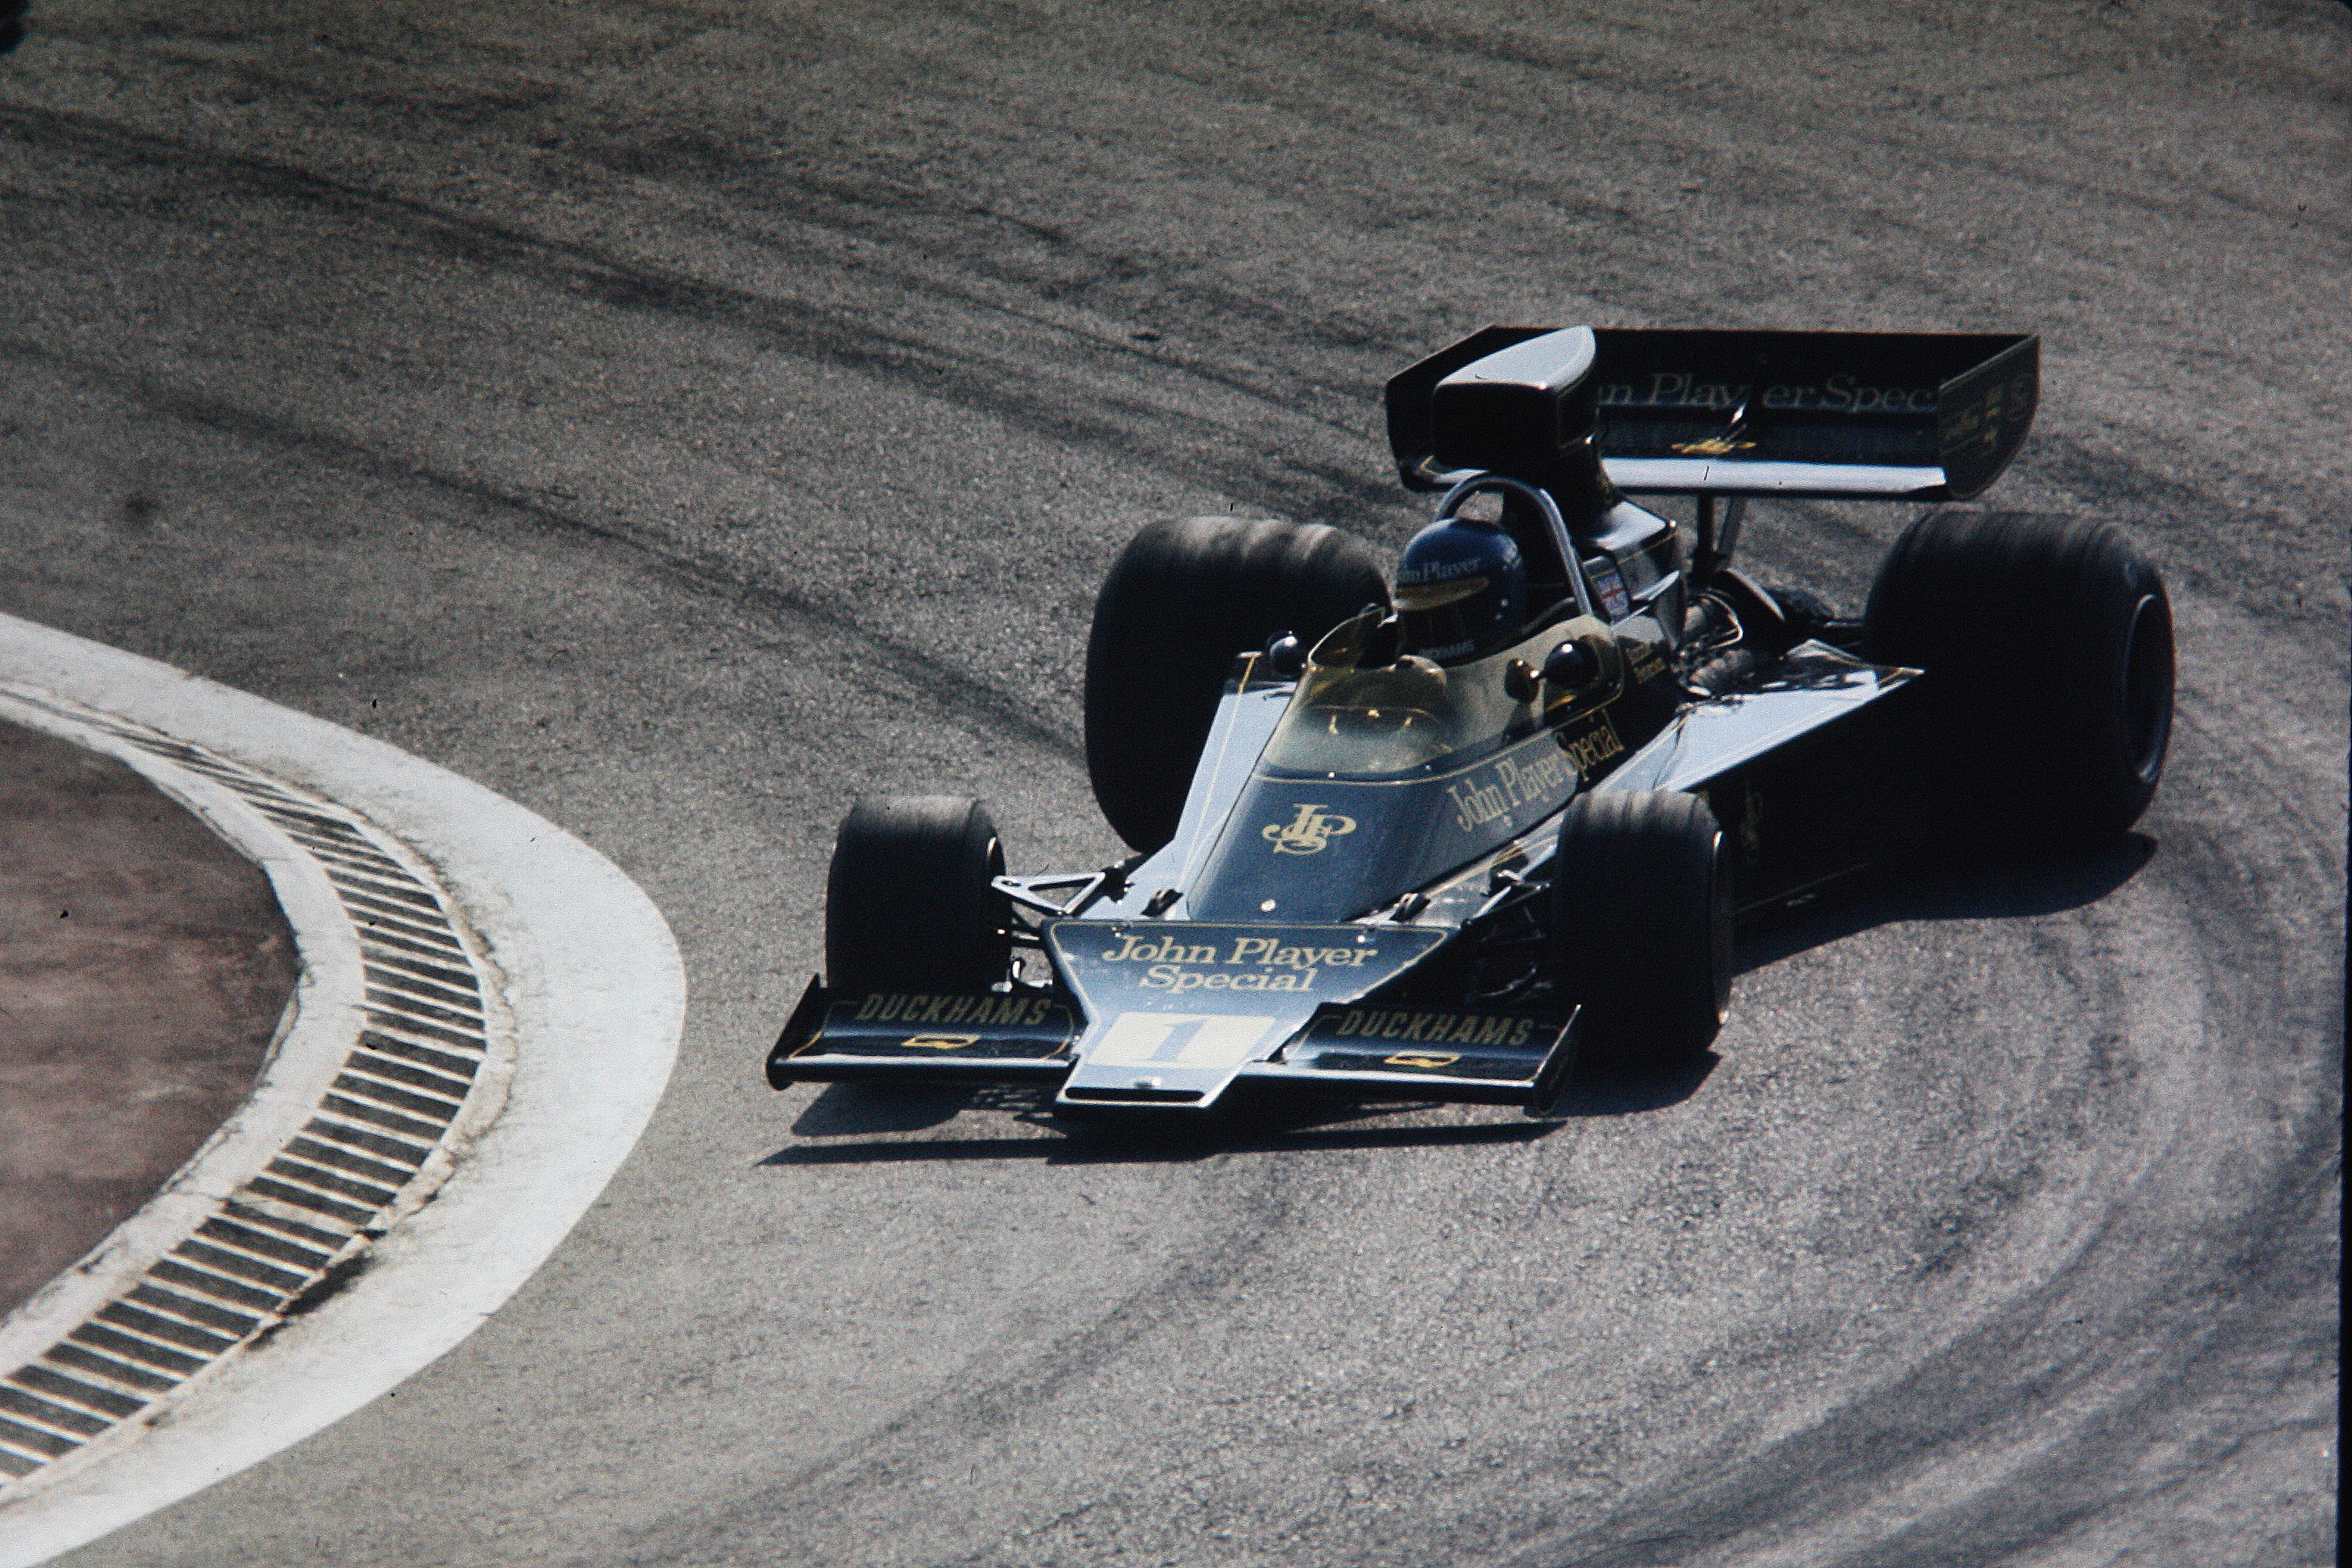 ronnie_peterson__spain_1974__by_f1_histo